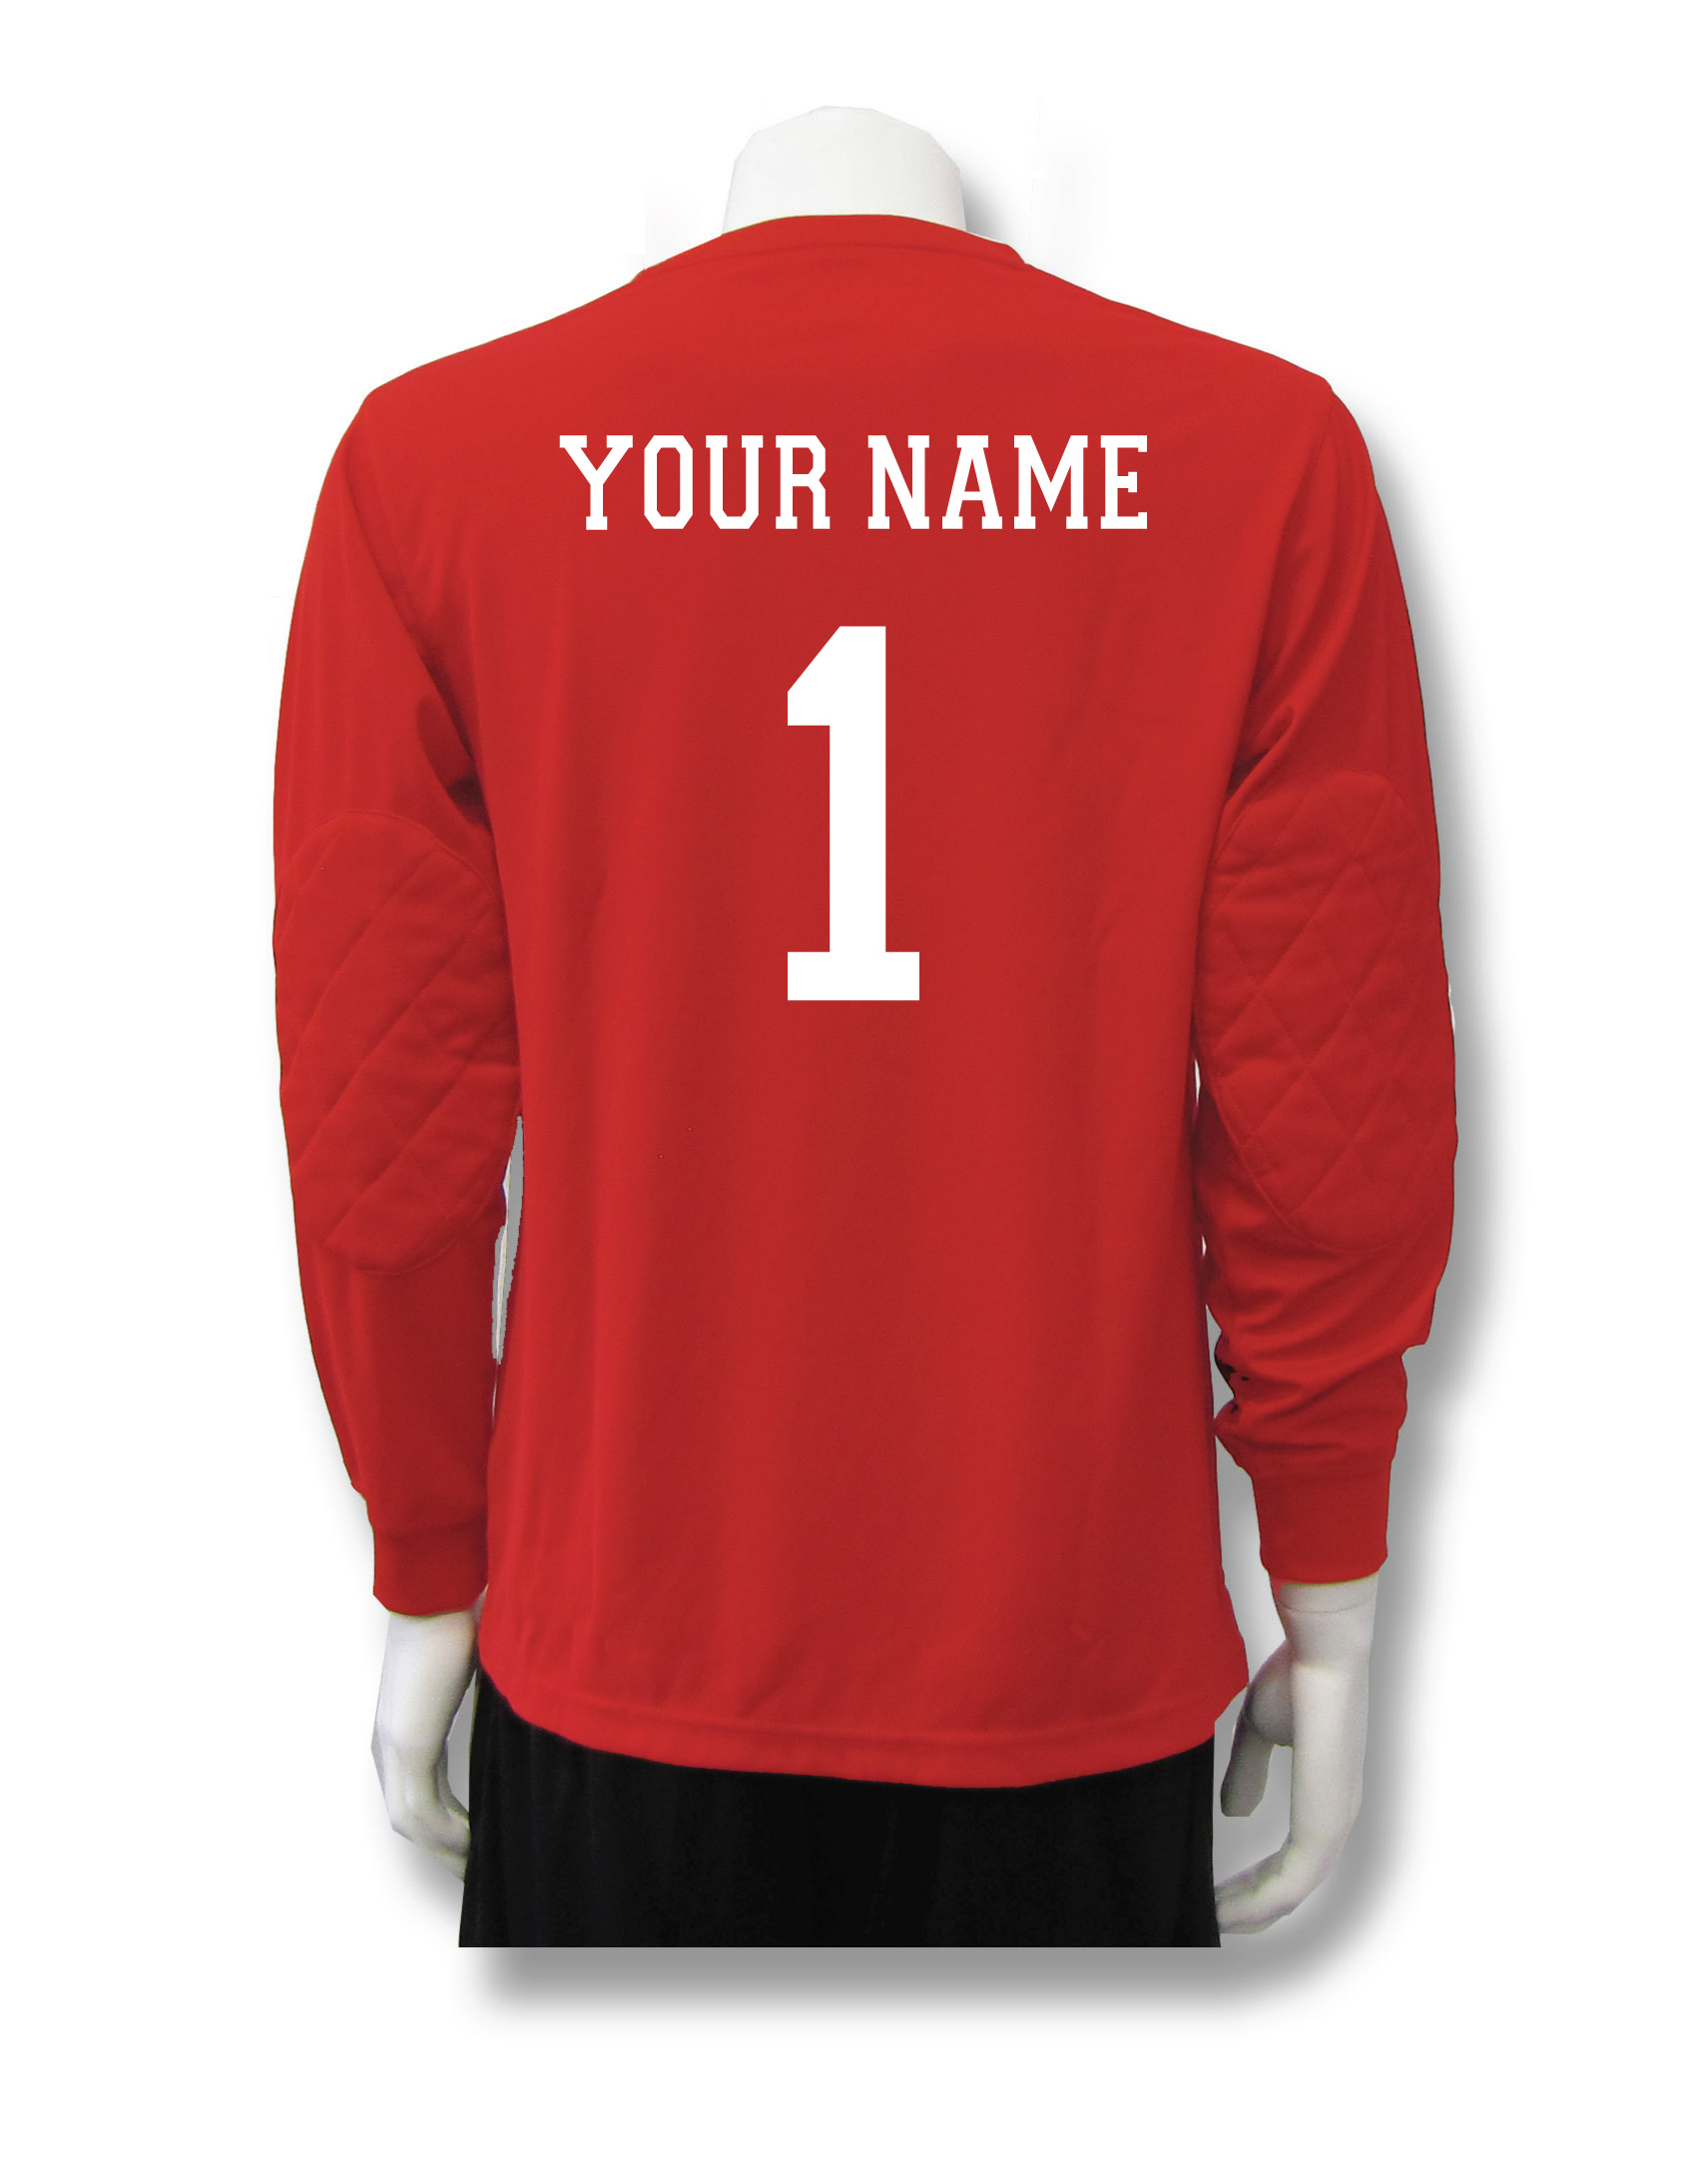 Long sleeve soccer keeper jersey in red with name and number by Code Four Athletics